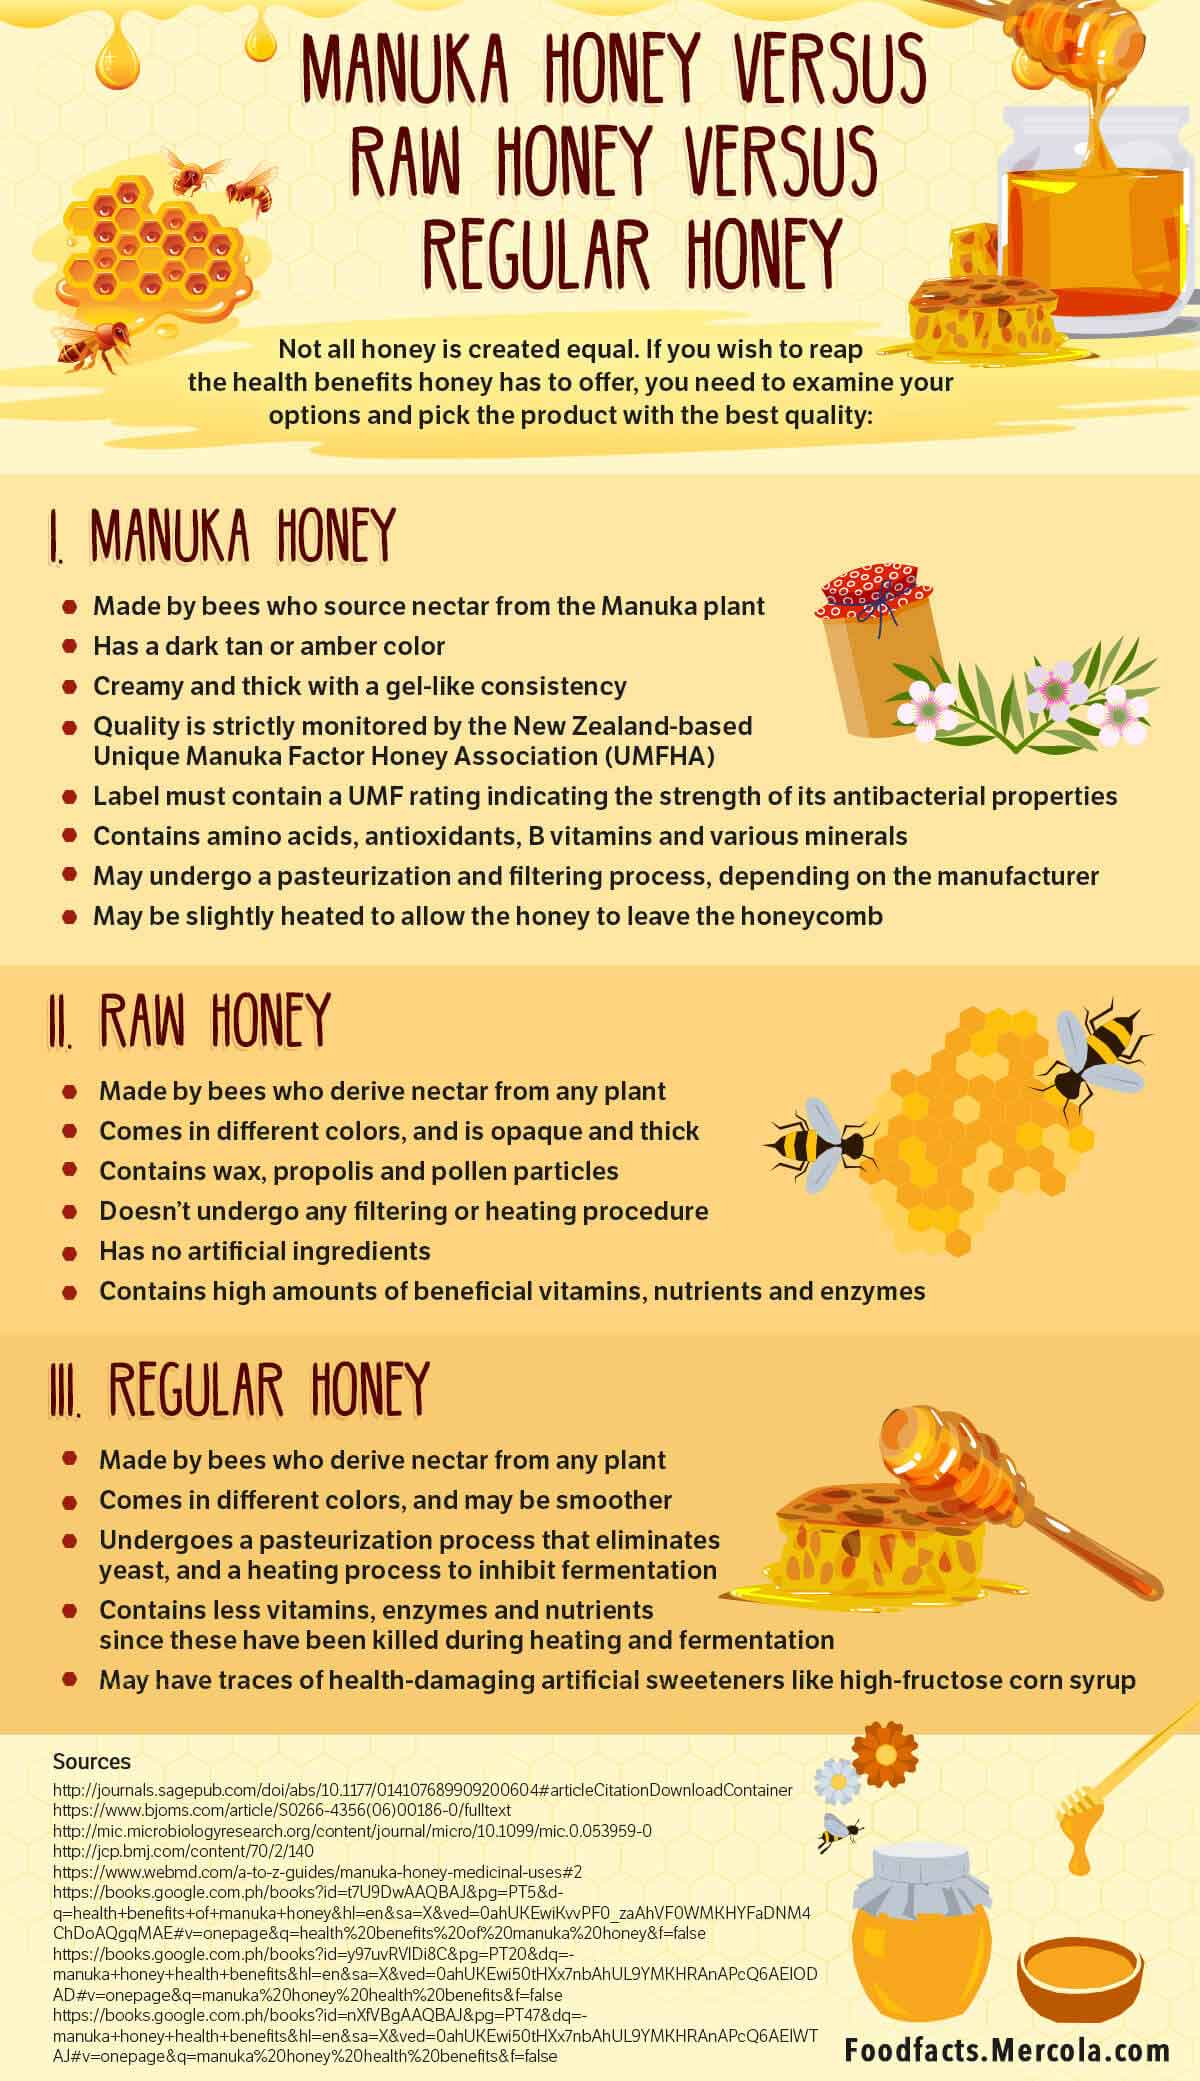 comparing manuka honey versus raw honey versus regular honey